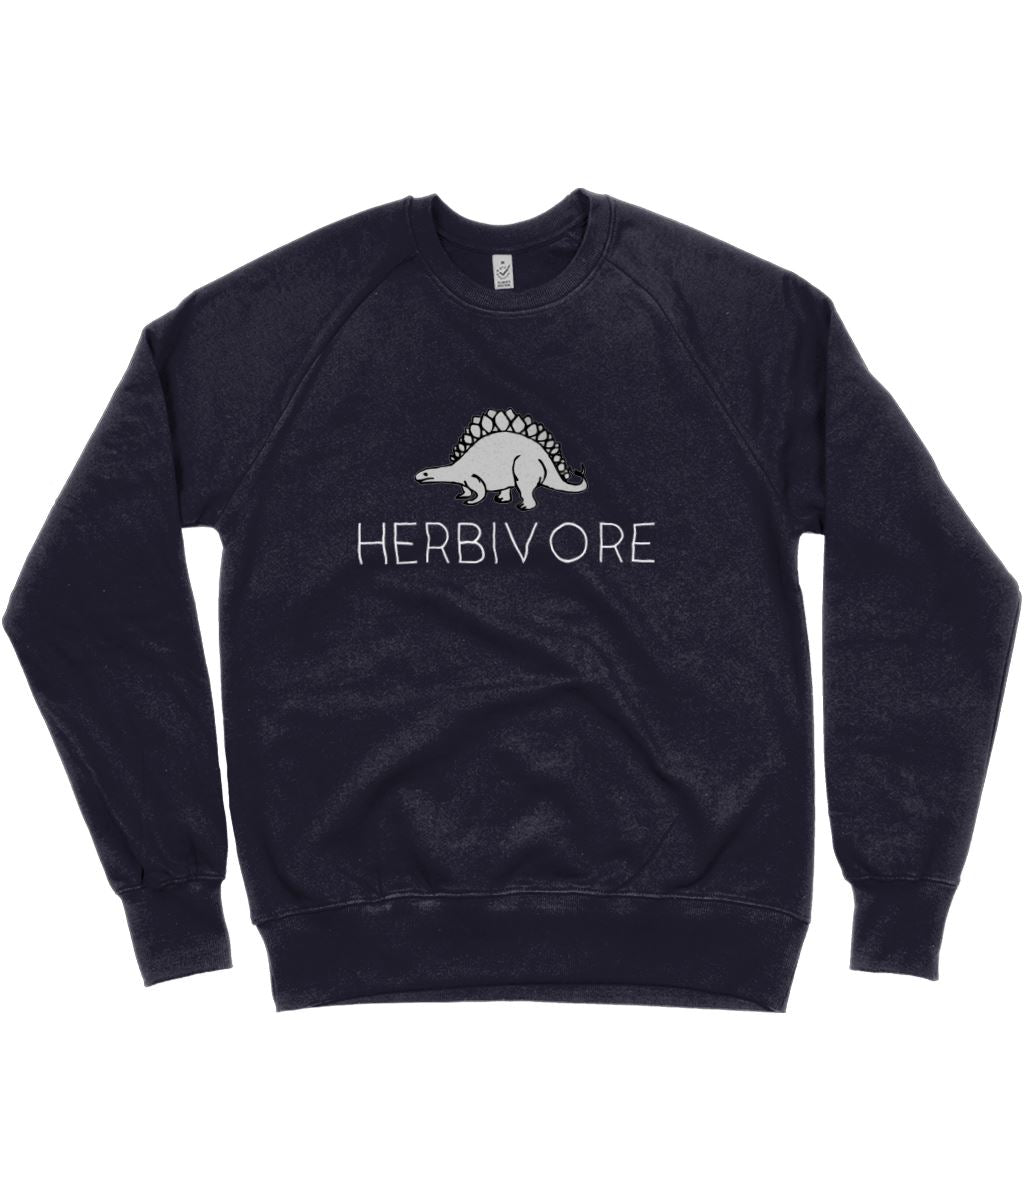 """Herbivore"" Stegosaurus Vegan Sweatshirt - 100% Organic Cotton (Unisex) Clothing Vegan Original Navy Small"